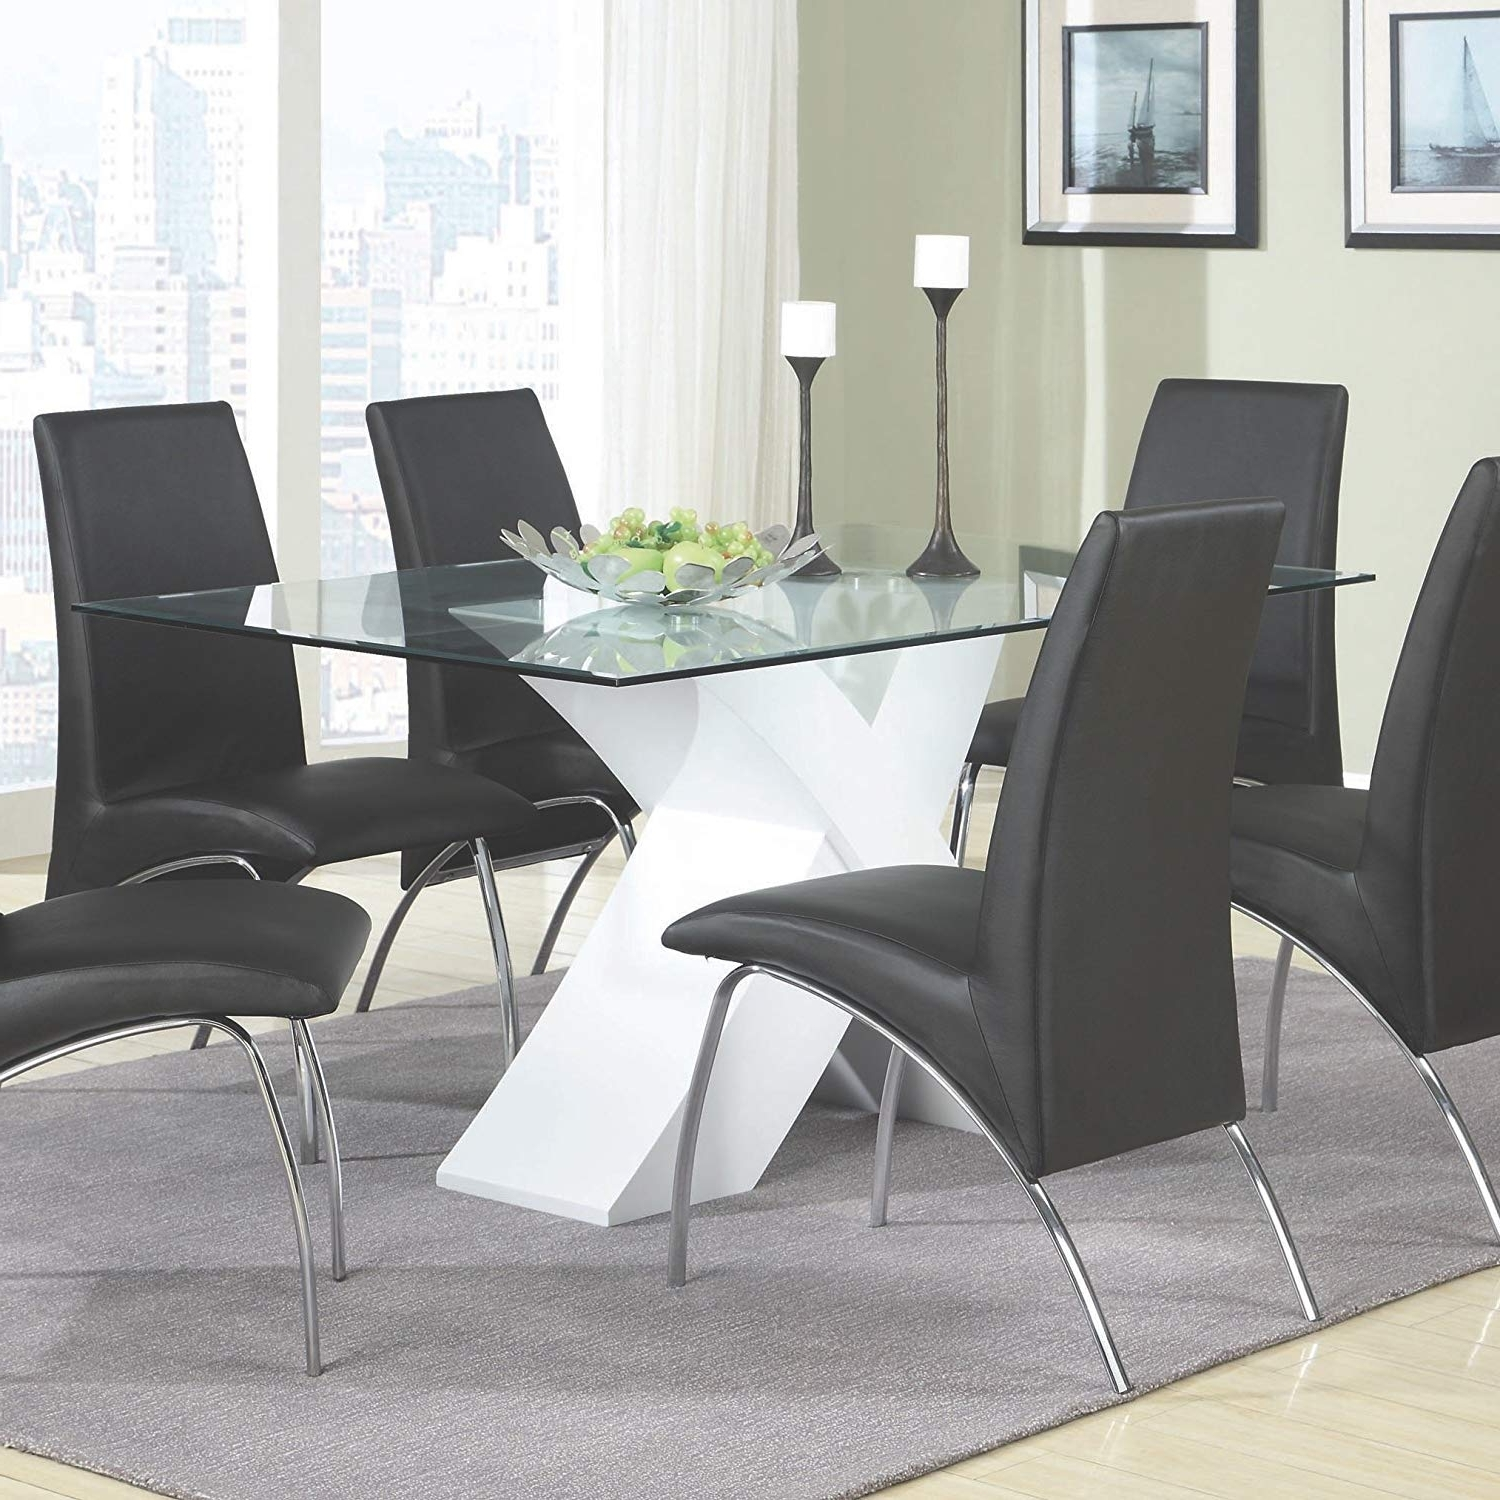 Most Recently Released Contemporary Dining Tables Sets Throughout Amazon: Coaster Home Furnishings 120821 Contemporary Glass Top (View 16 of 25)